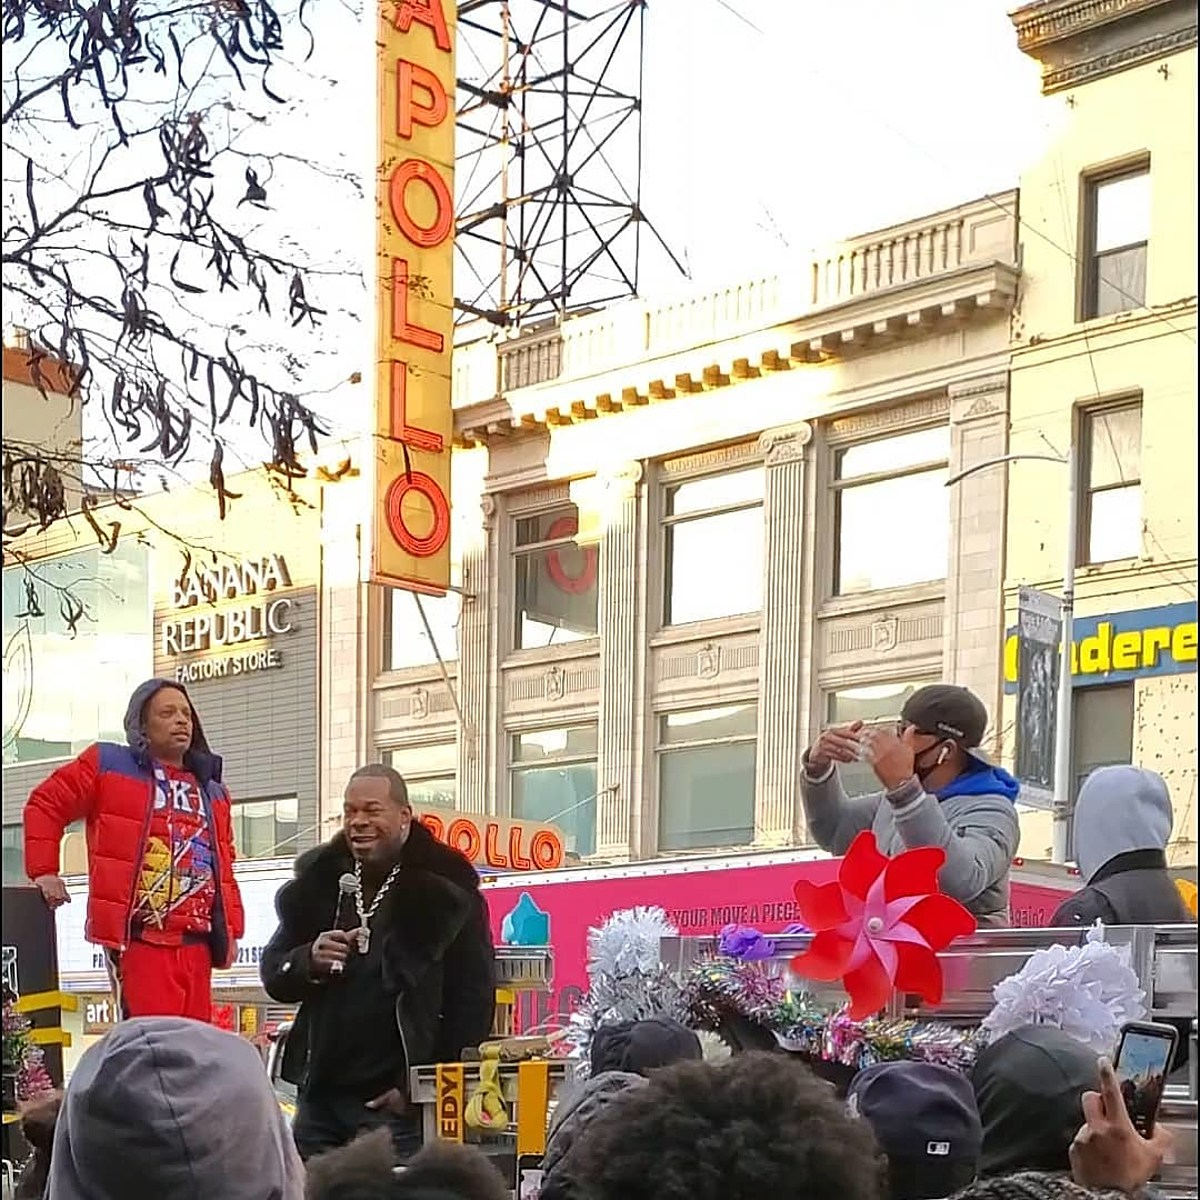 Watch Busta Rhymes perform for voters outside The Apollo